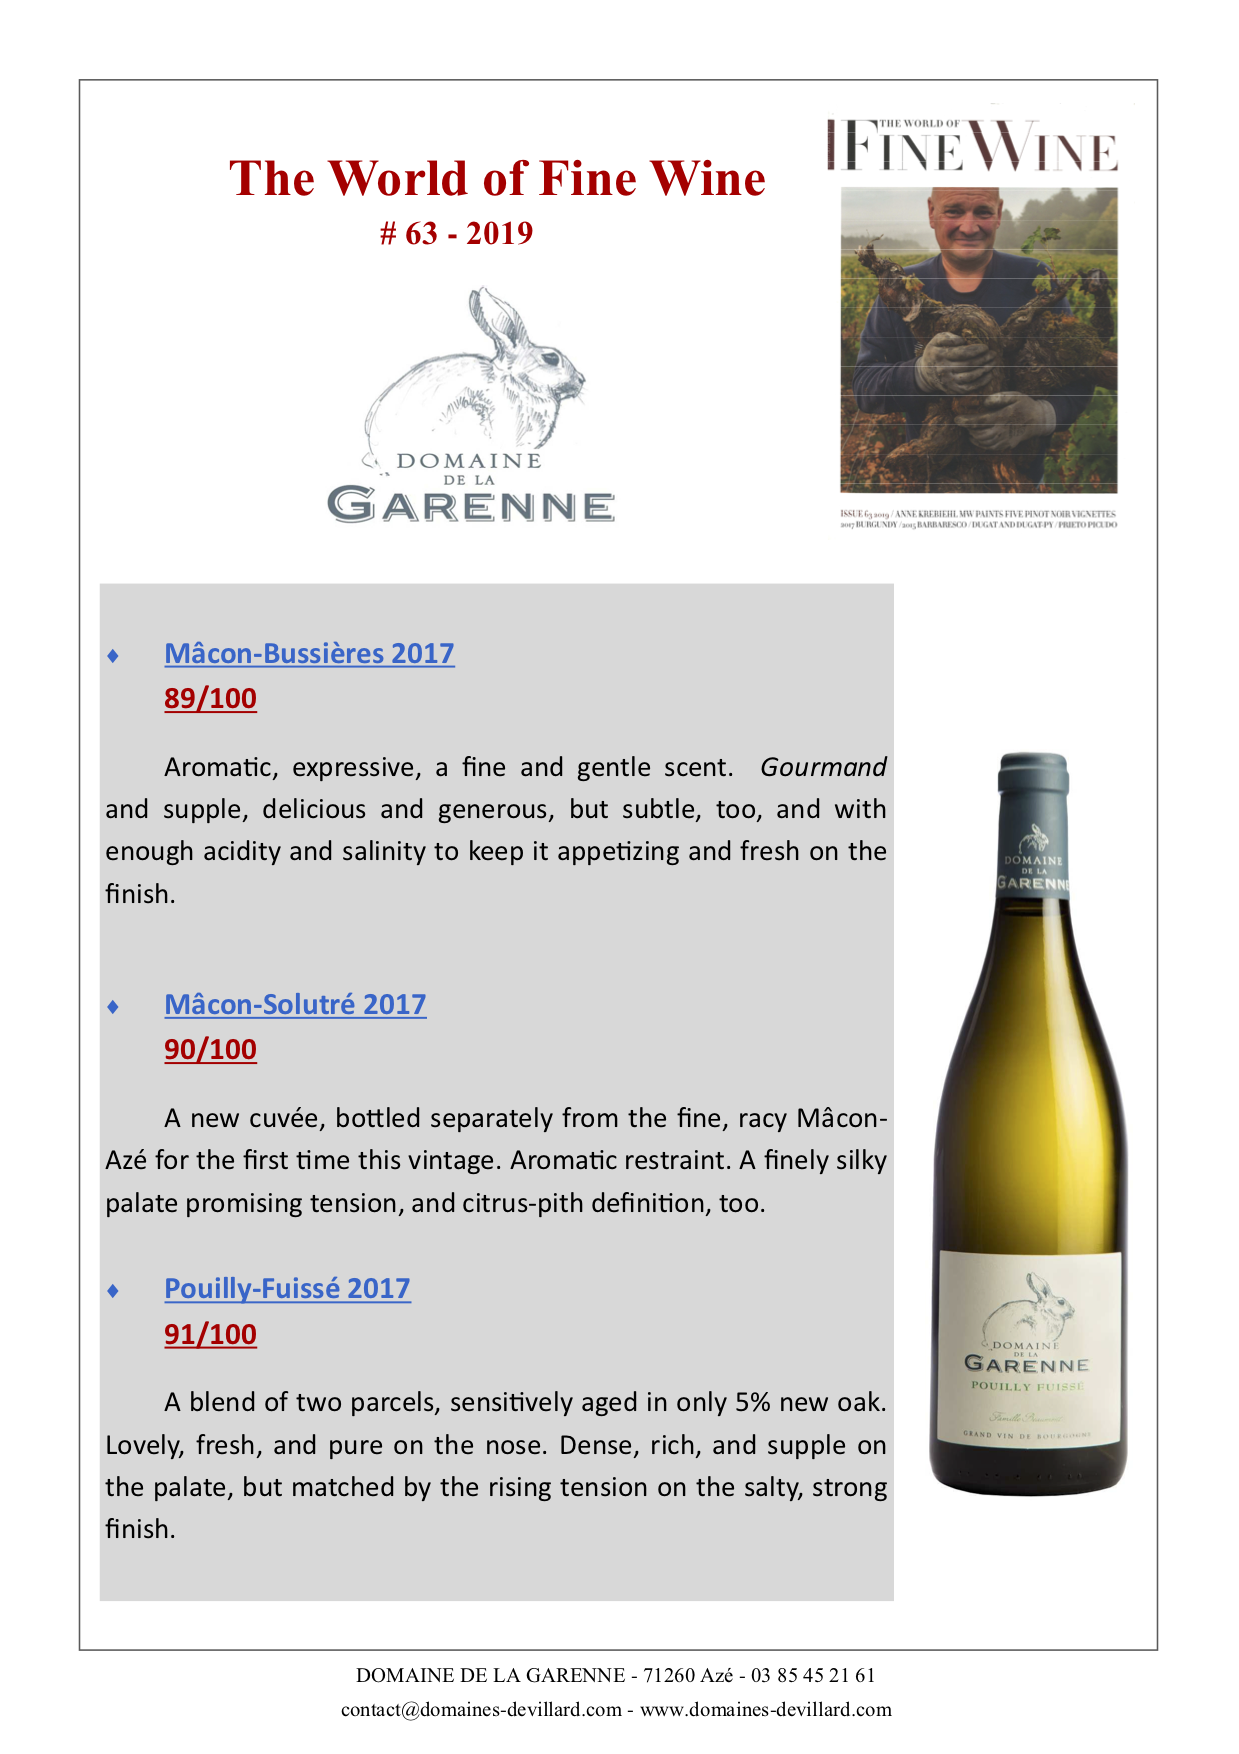 The World of Fine Wines_Garenne 2017.png